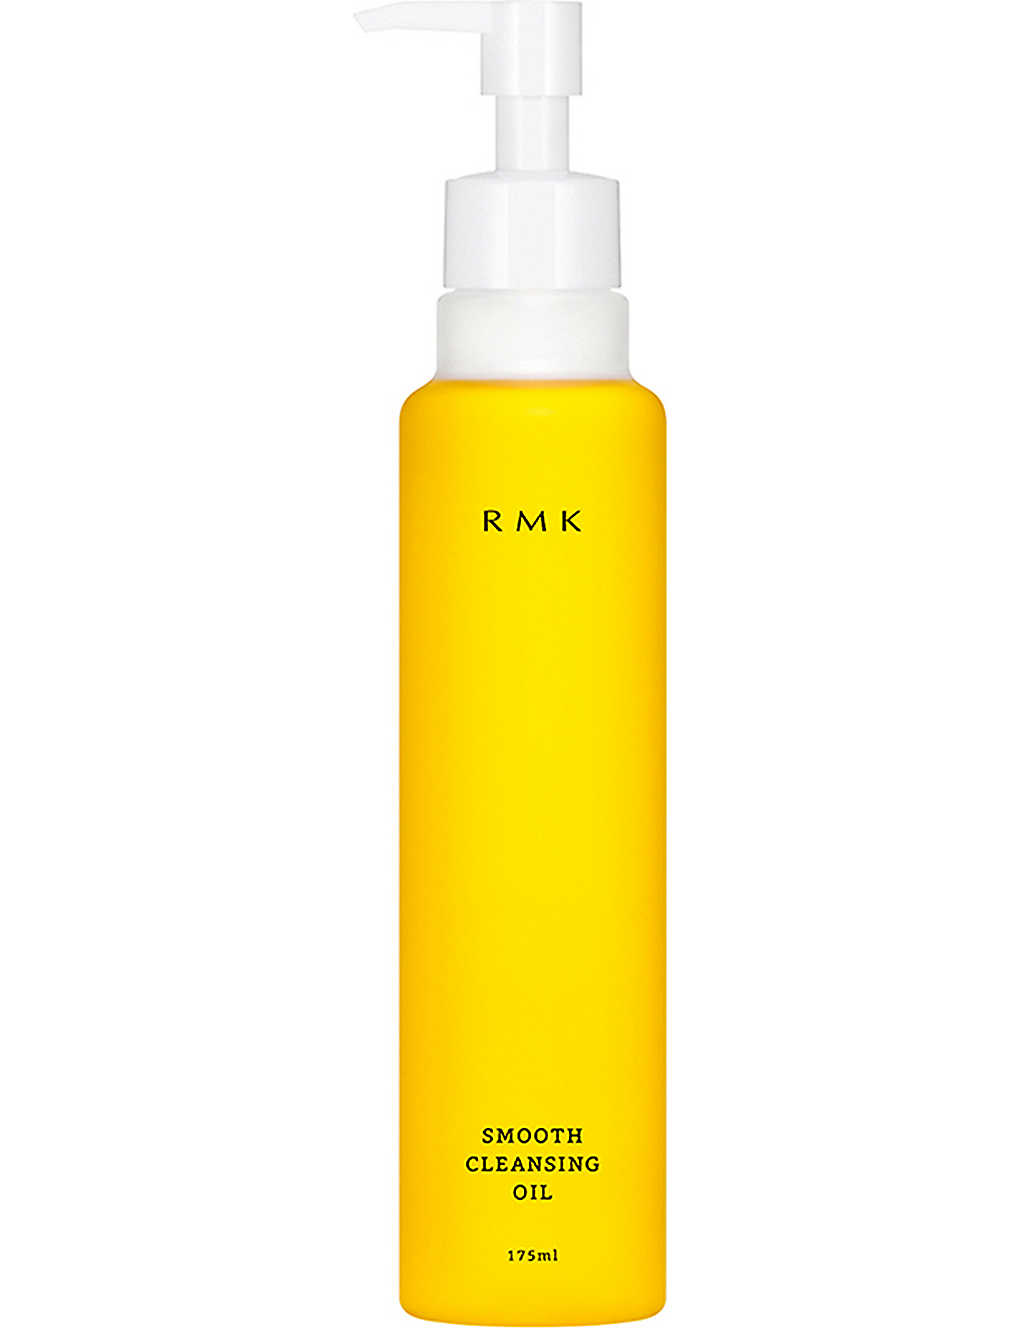 RMK: Smooth Cleansing Oil 175ml